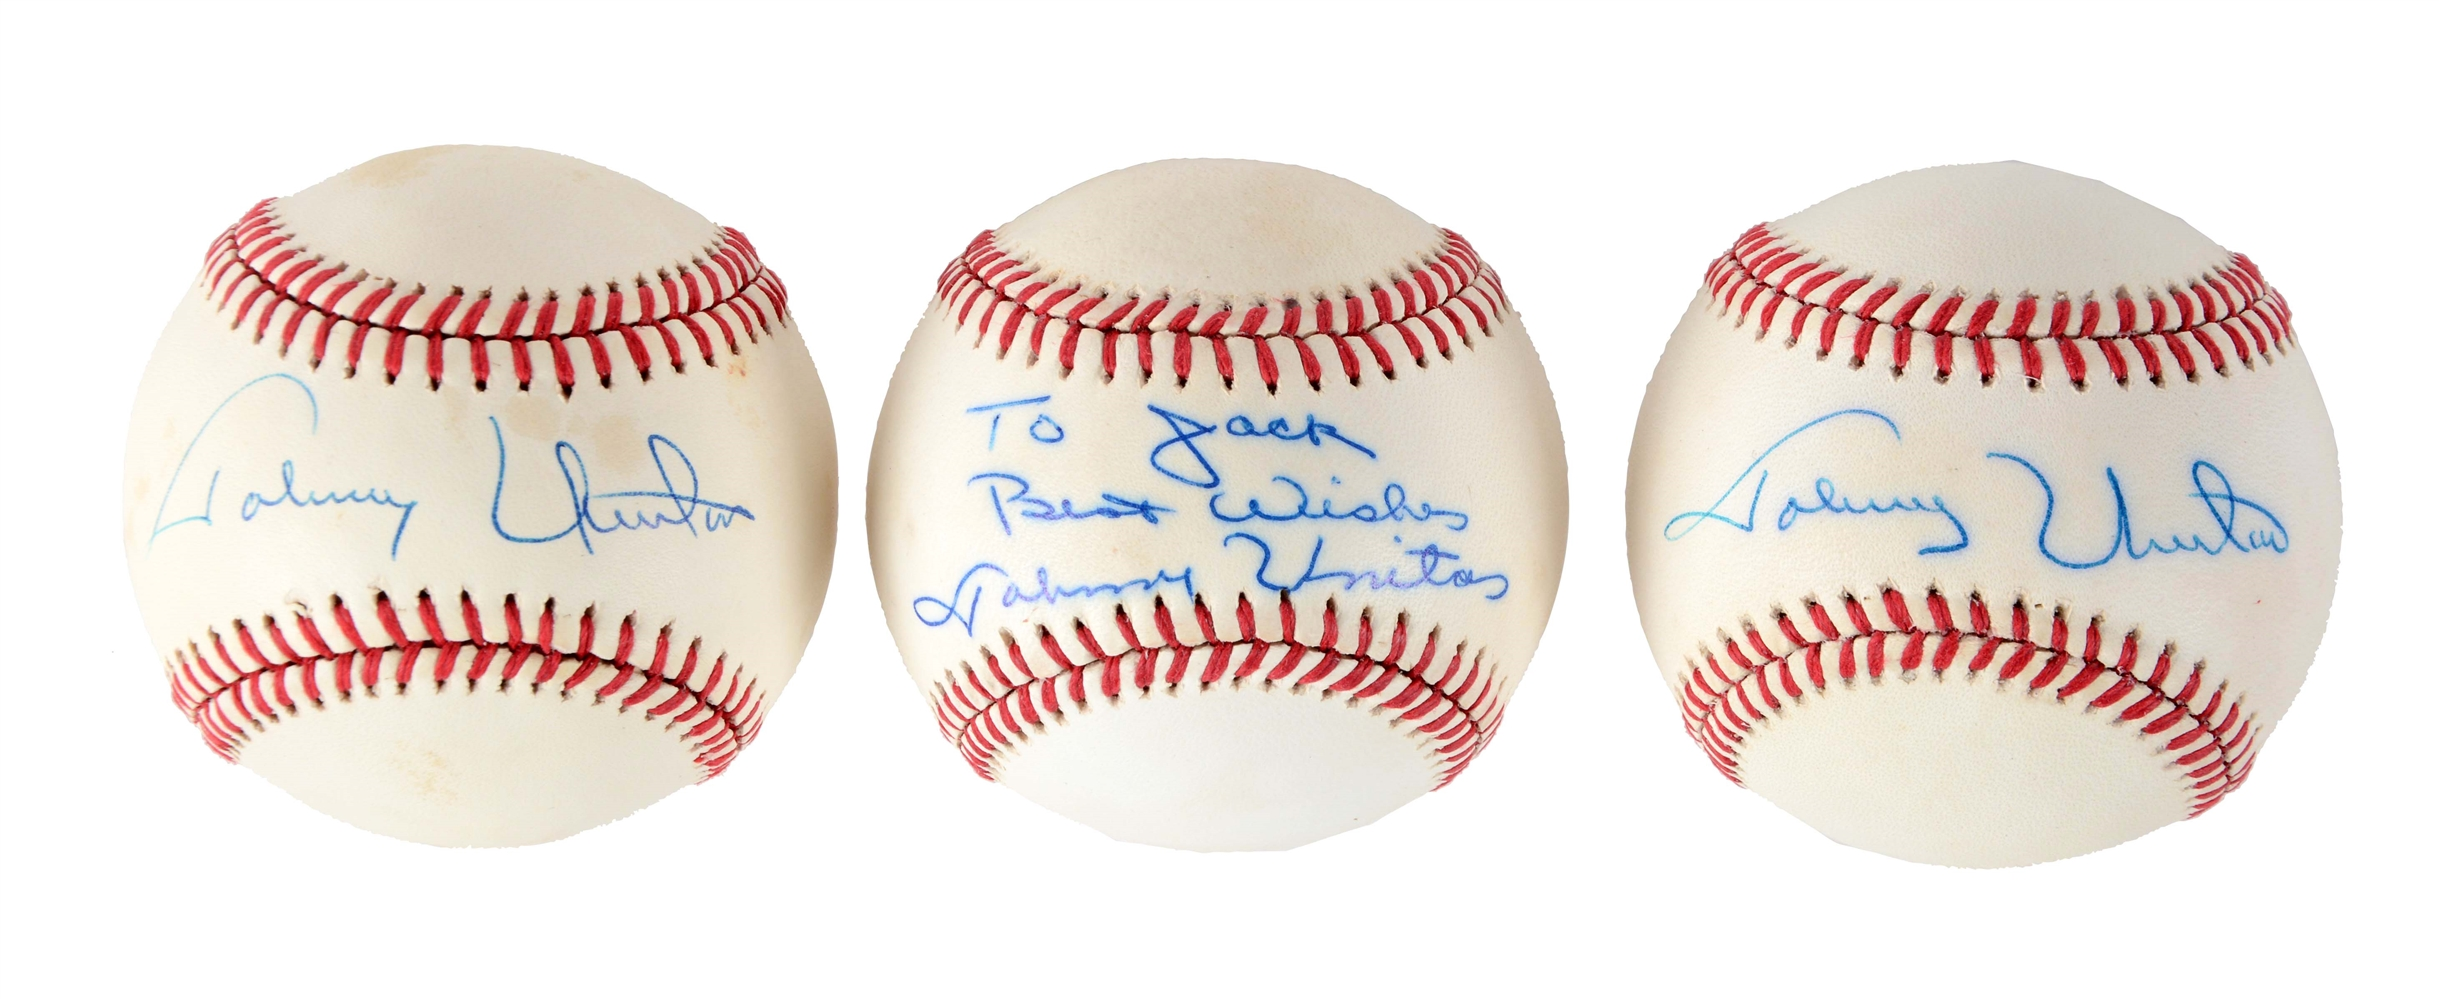 Lot of 3: Johnny Unitas Single Signed Baseballs.